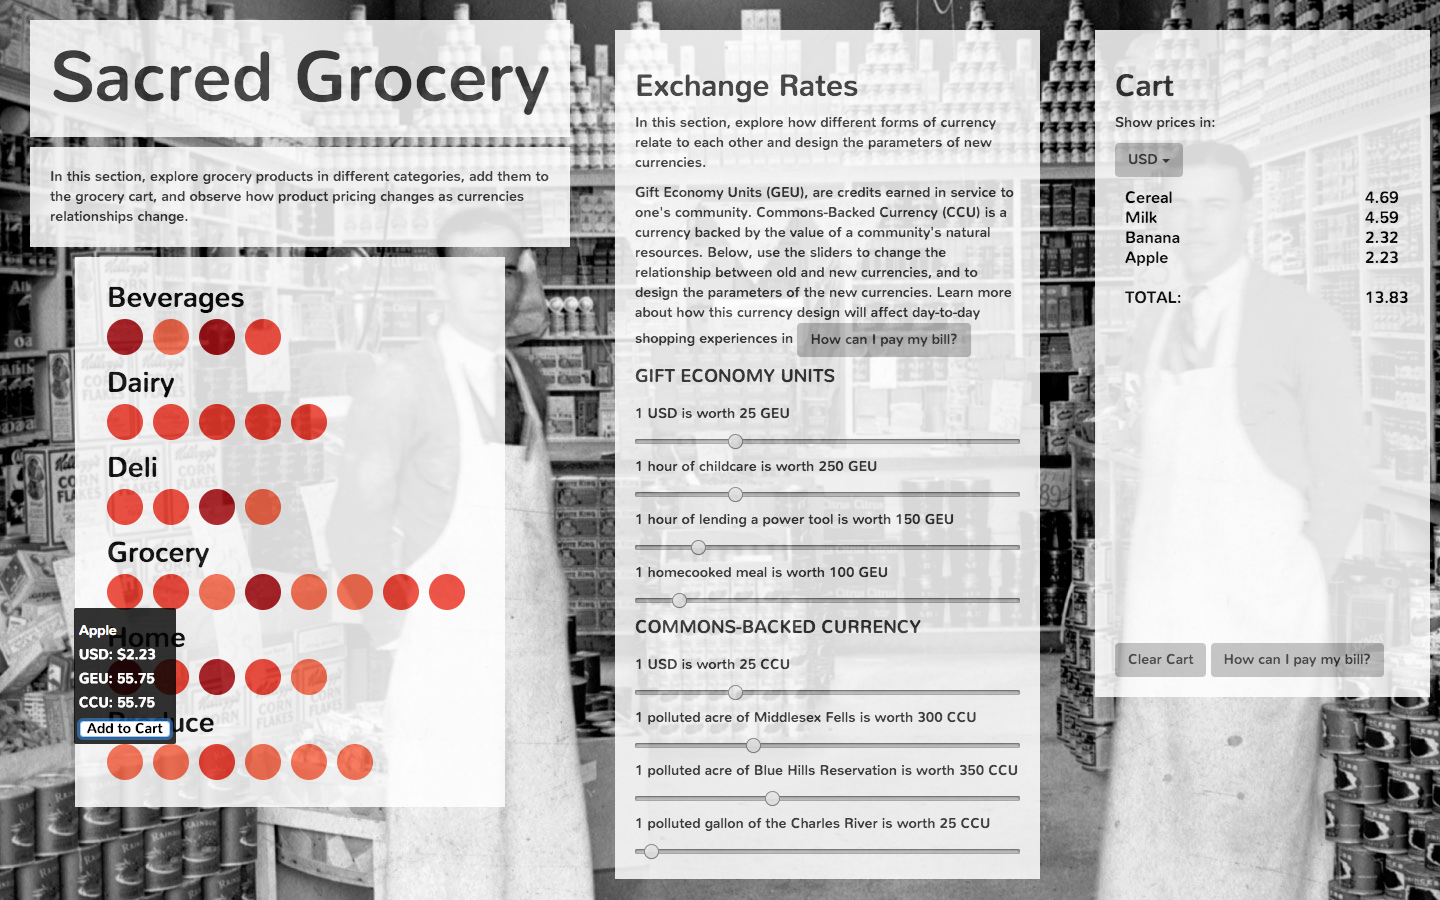 Hypothetical grocery with exploratory currencies